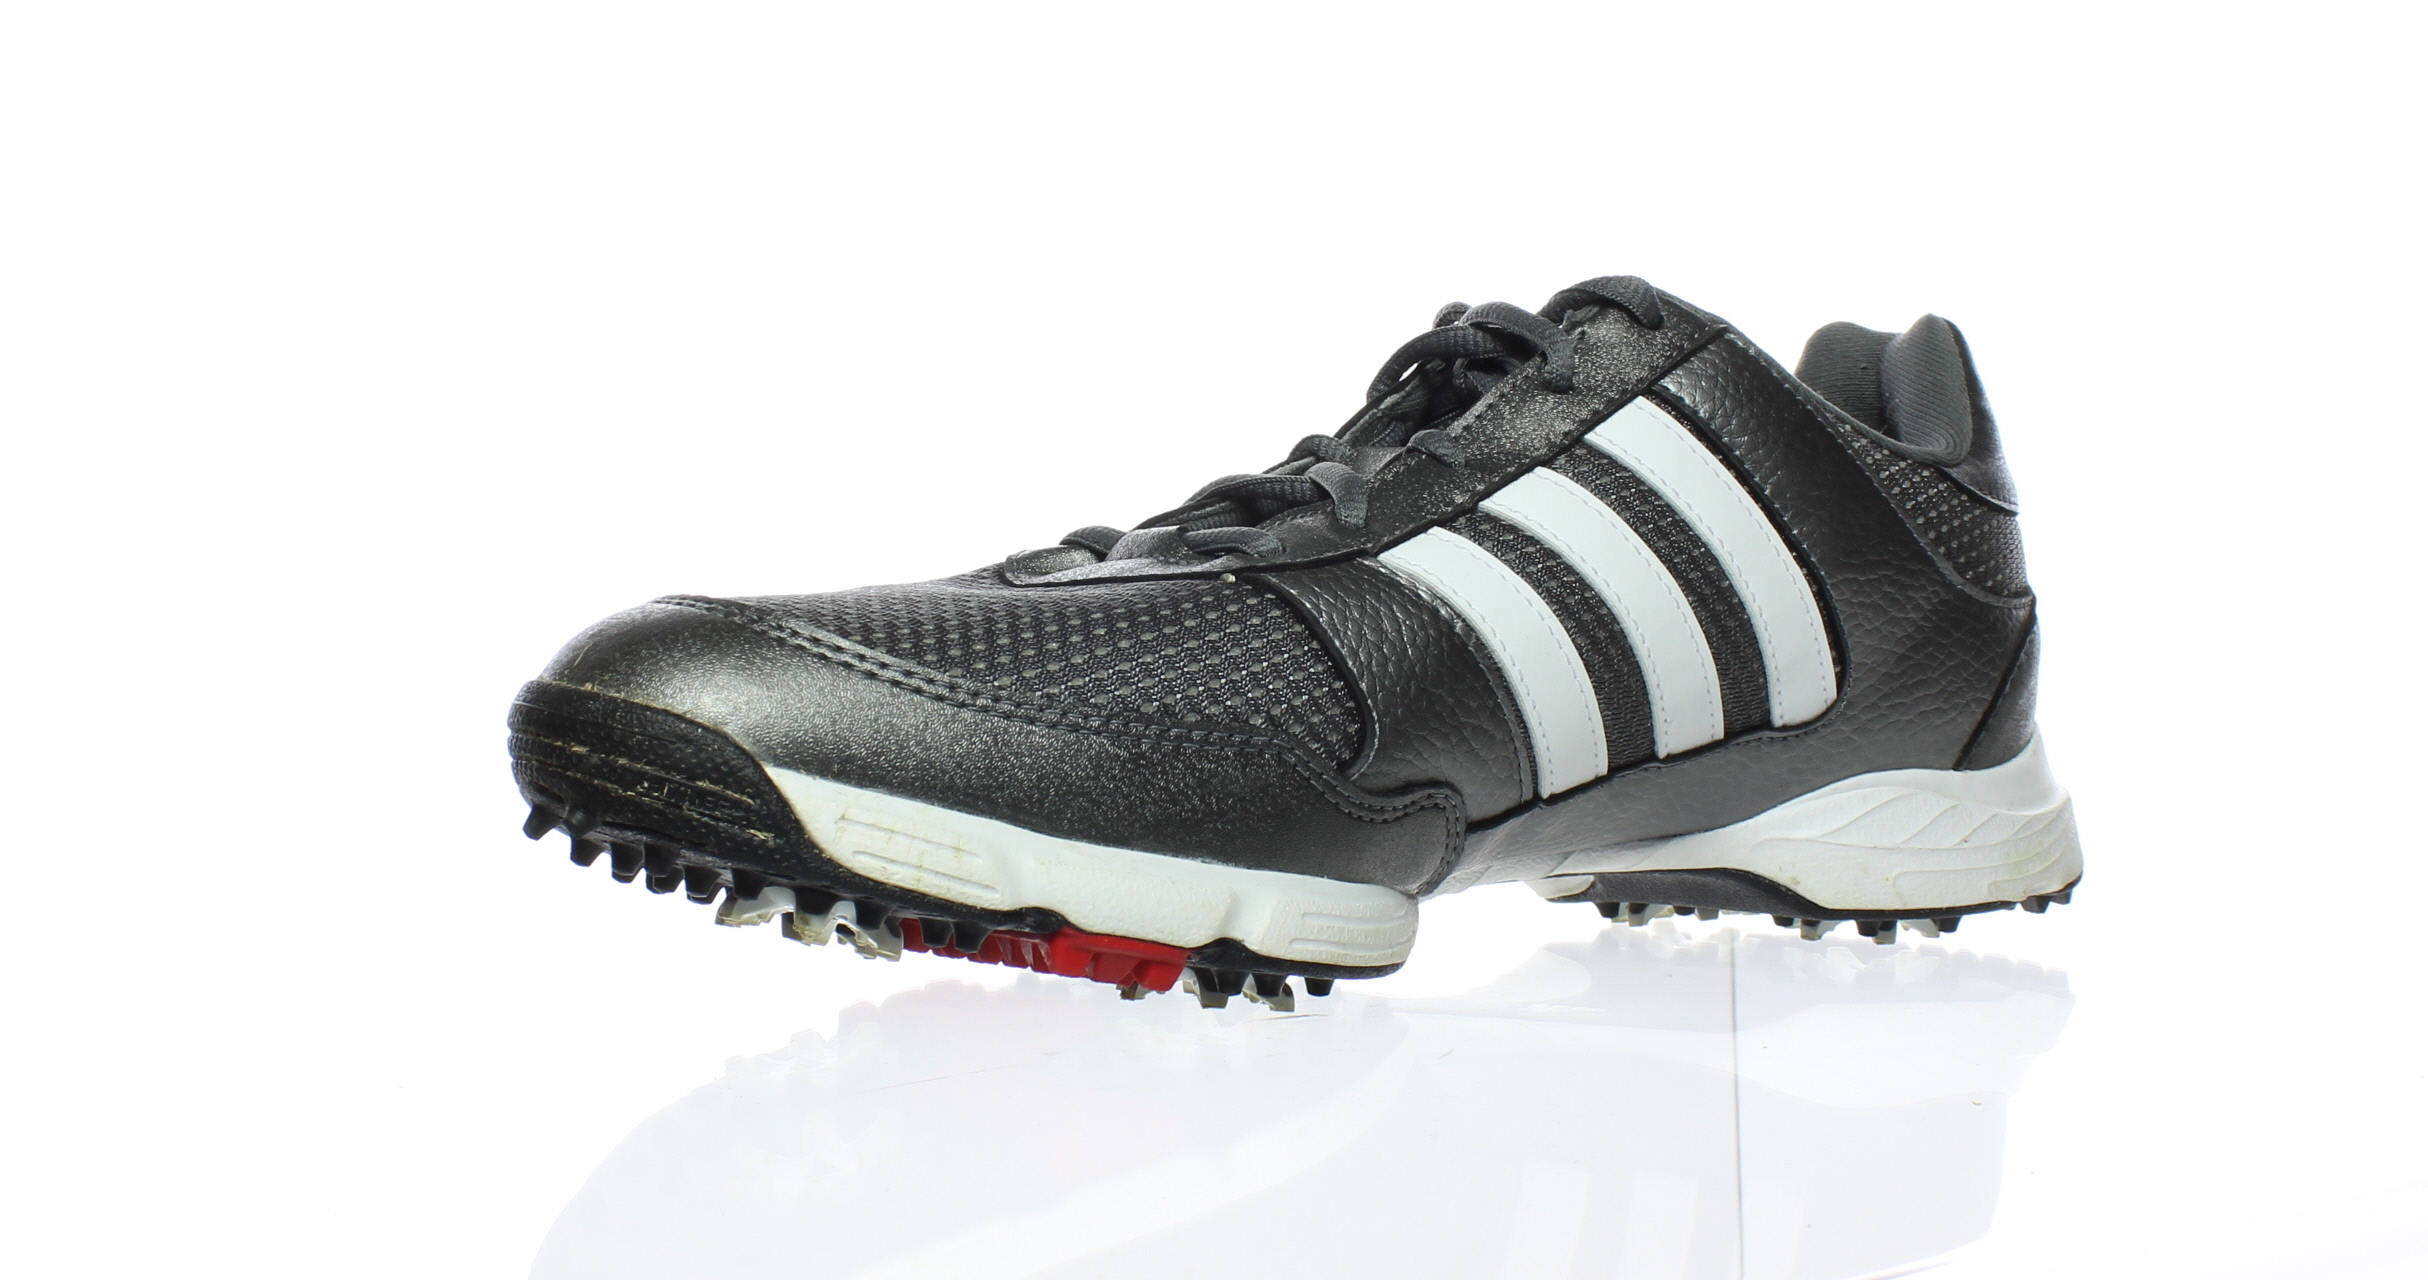 bc1670c42 Adidas Mens Mens Mens Golf Shoes Size 10 (14647) afff4f - golf ...